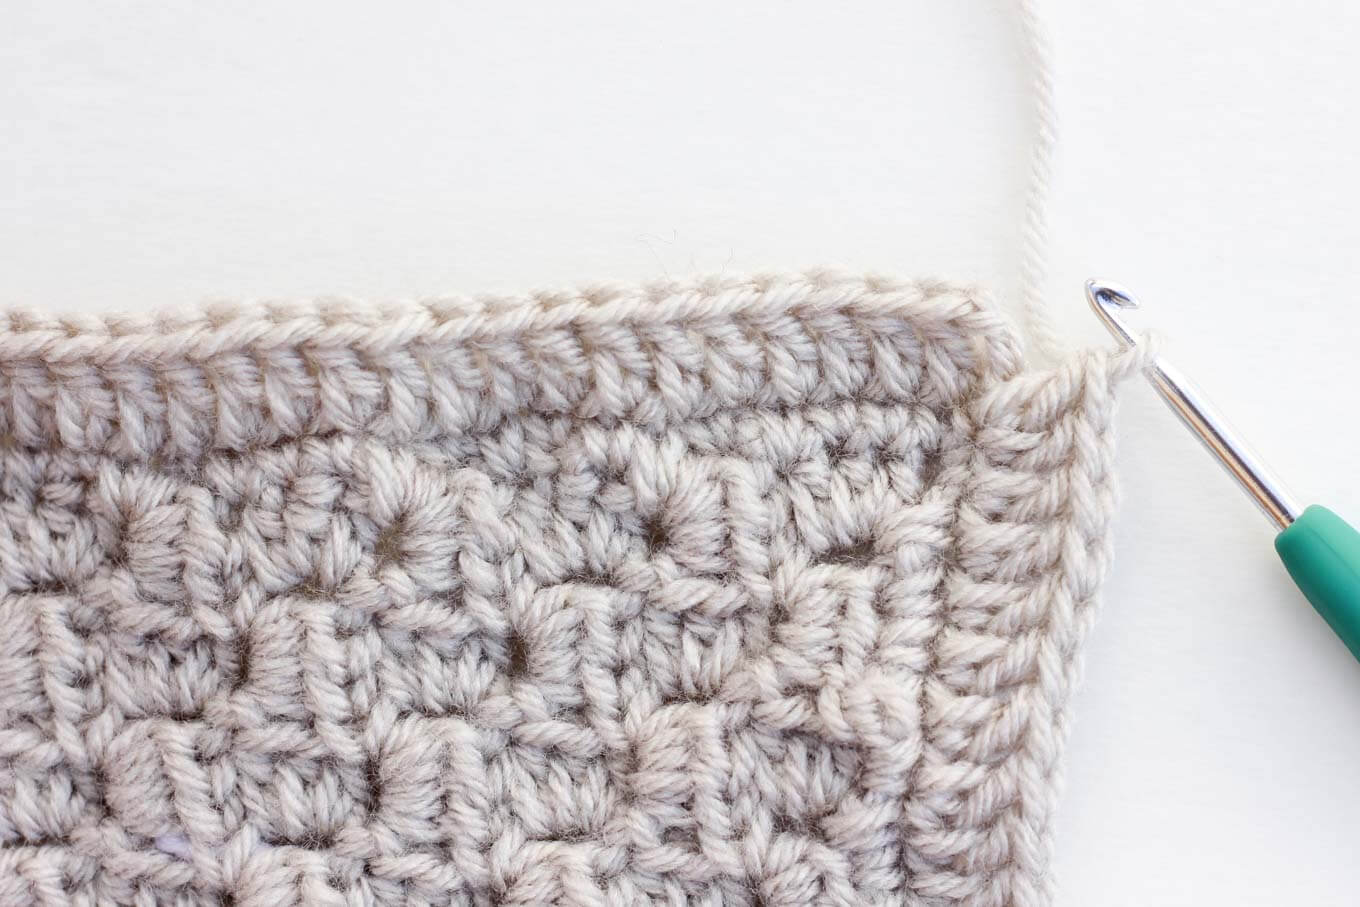 You've worked diligently on creating corner-to-corner crochet squares and now you're wondering what to do with them, right? This tutorial will show you how to add a border (or basic edging) to a C2C afghan block so that it's ready to be sewn together into a blanket.